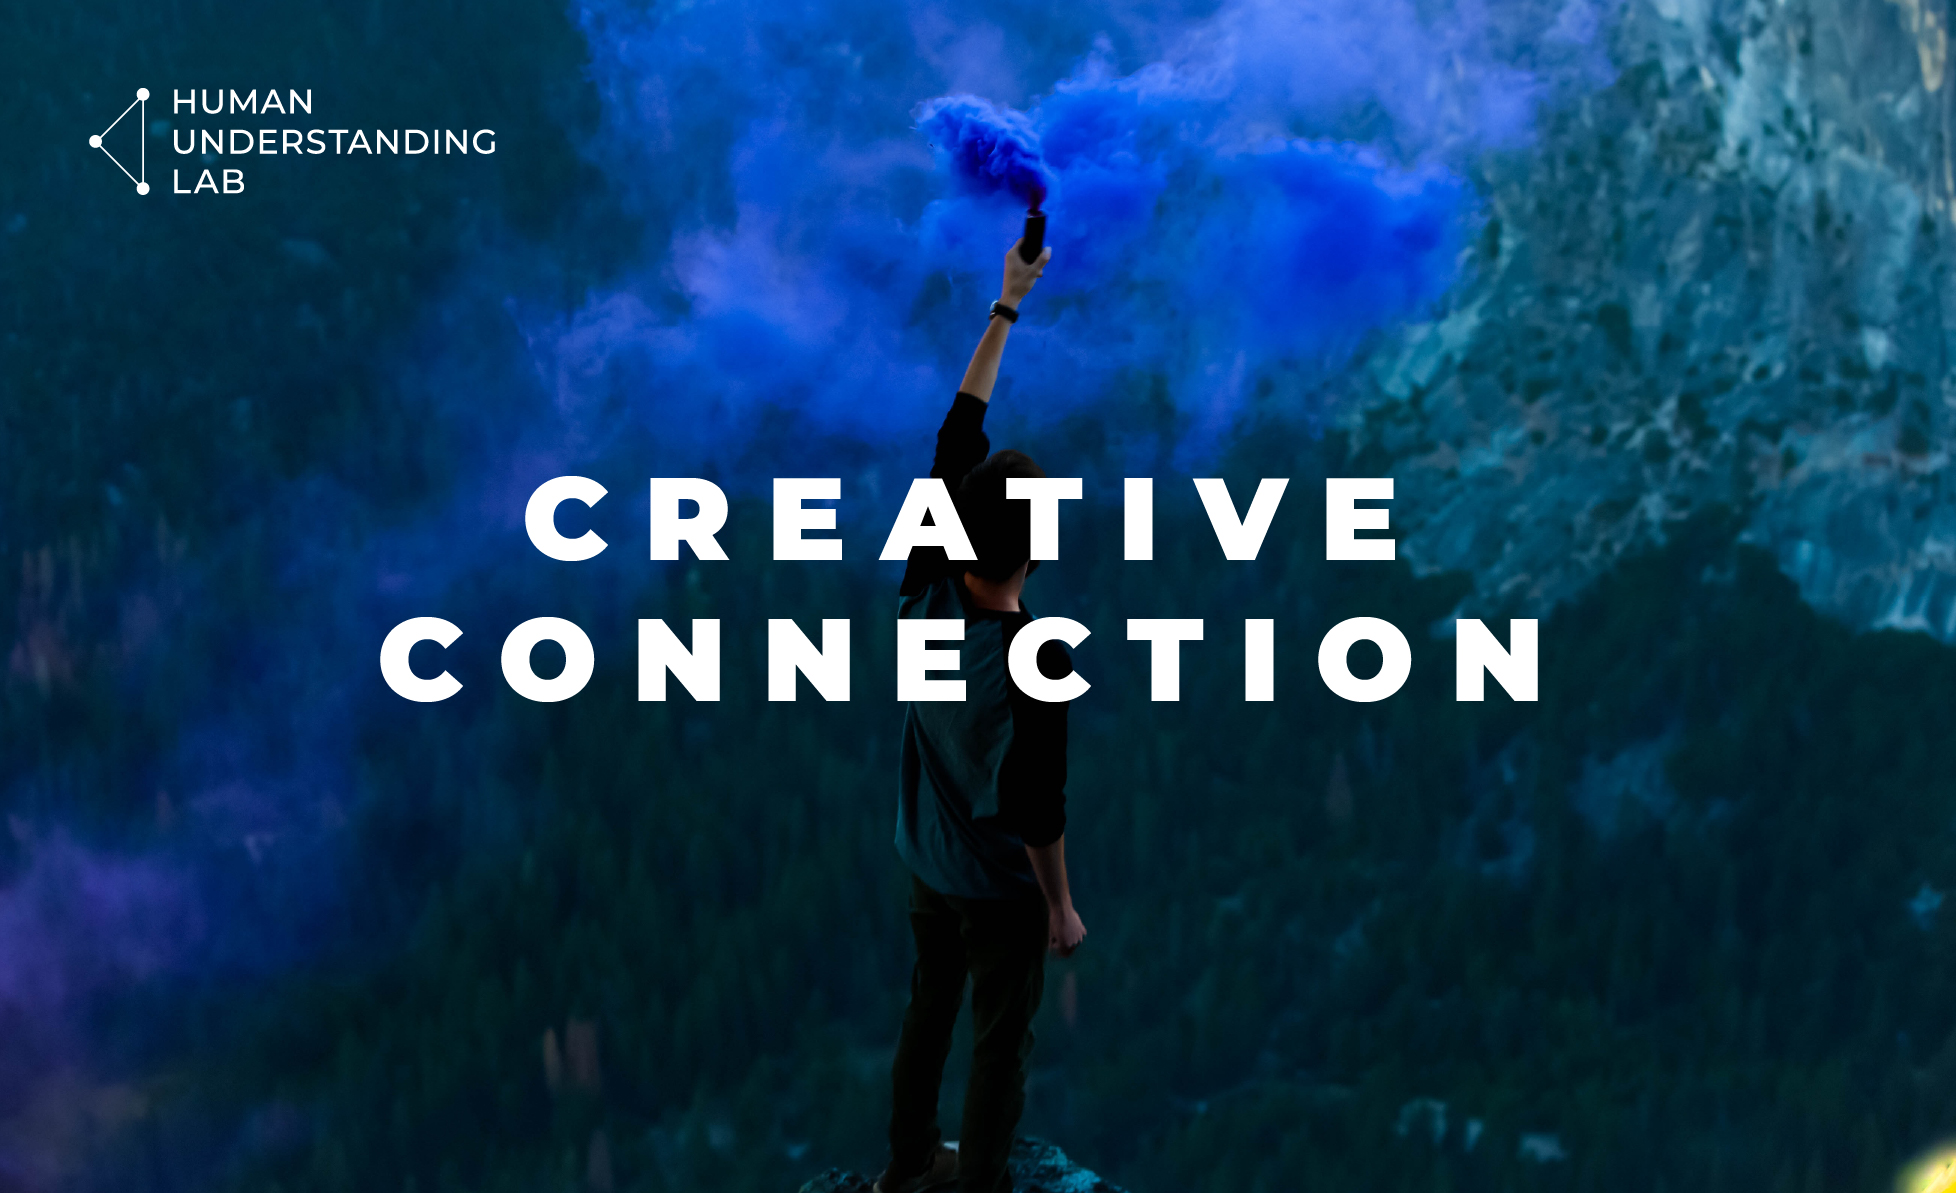 Human-Understanding-Lab-suite-Creative-Connection-ad-testing